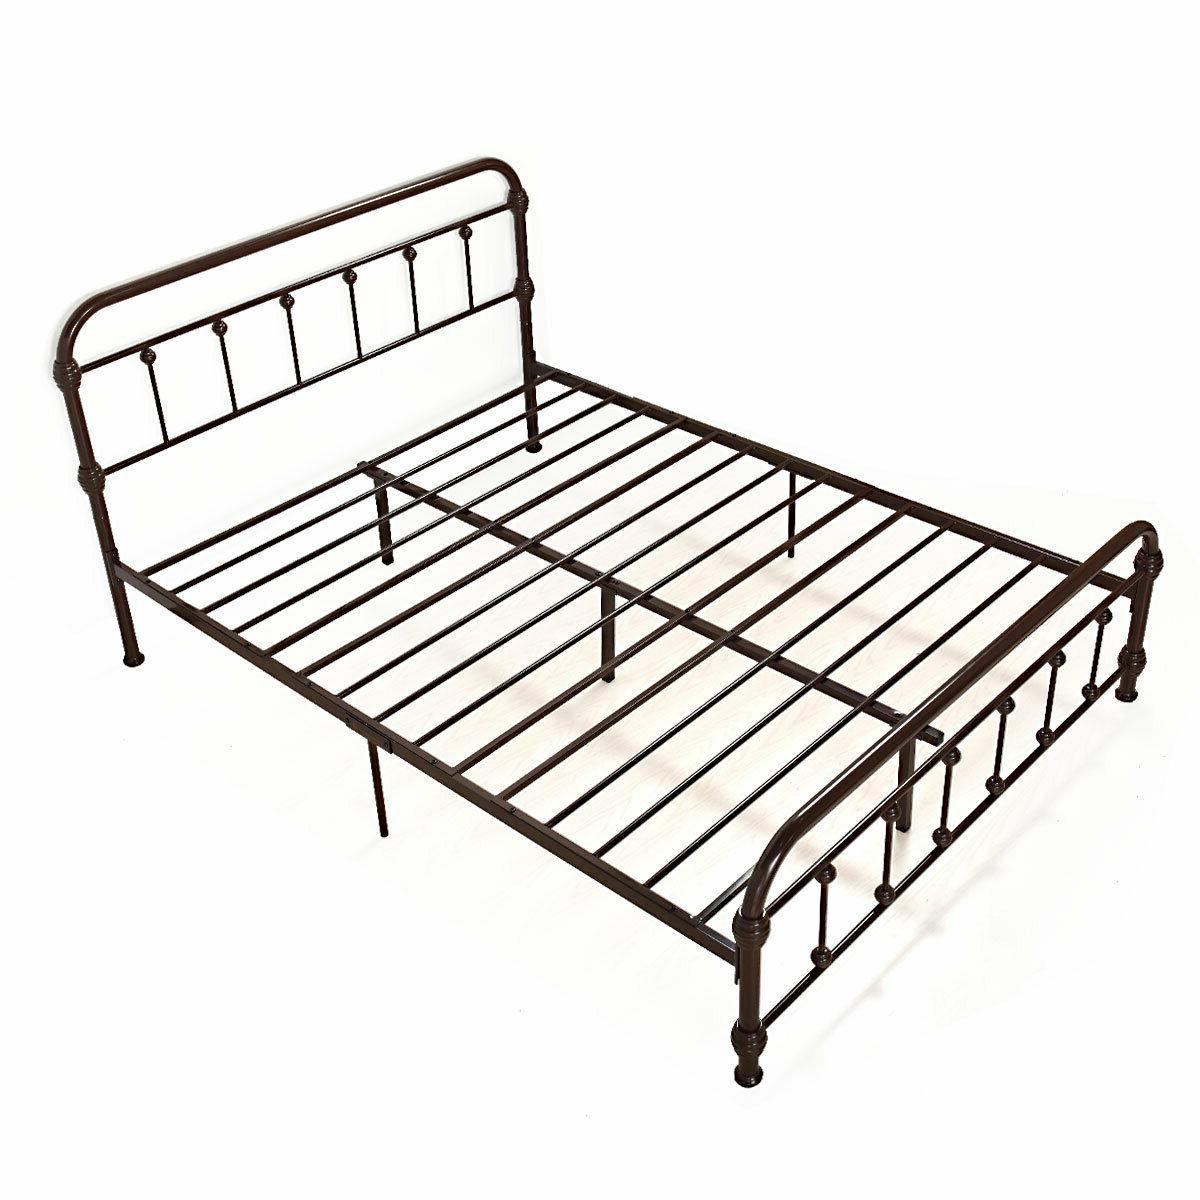 Heavy Duty Bed Platform Bedroom Bed